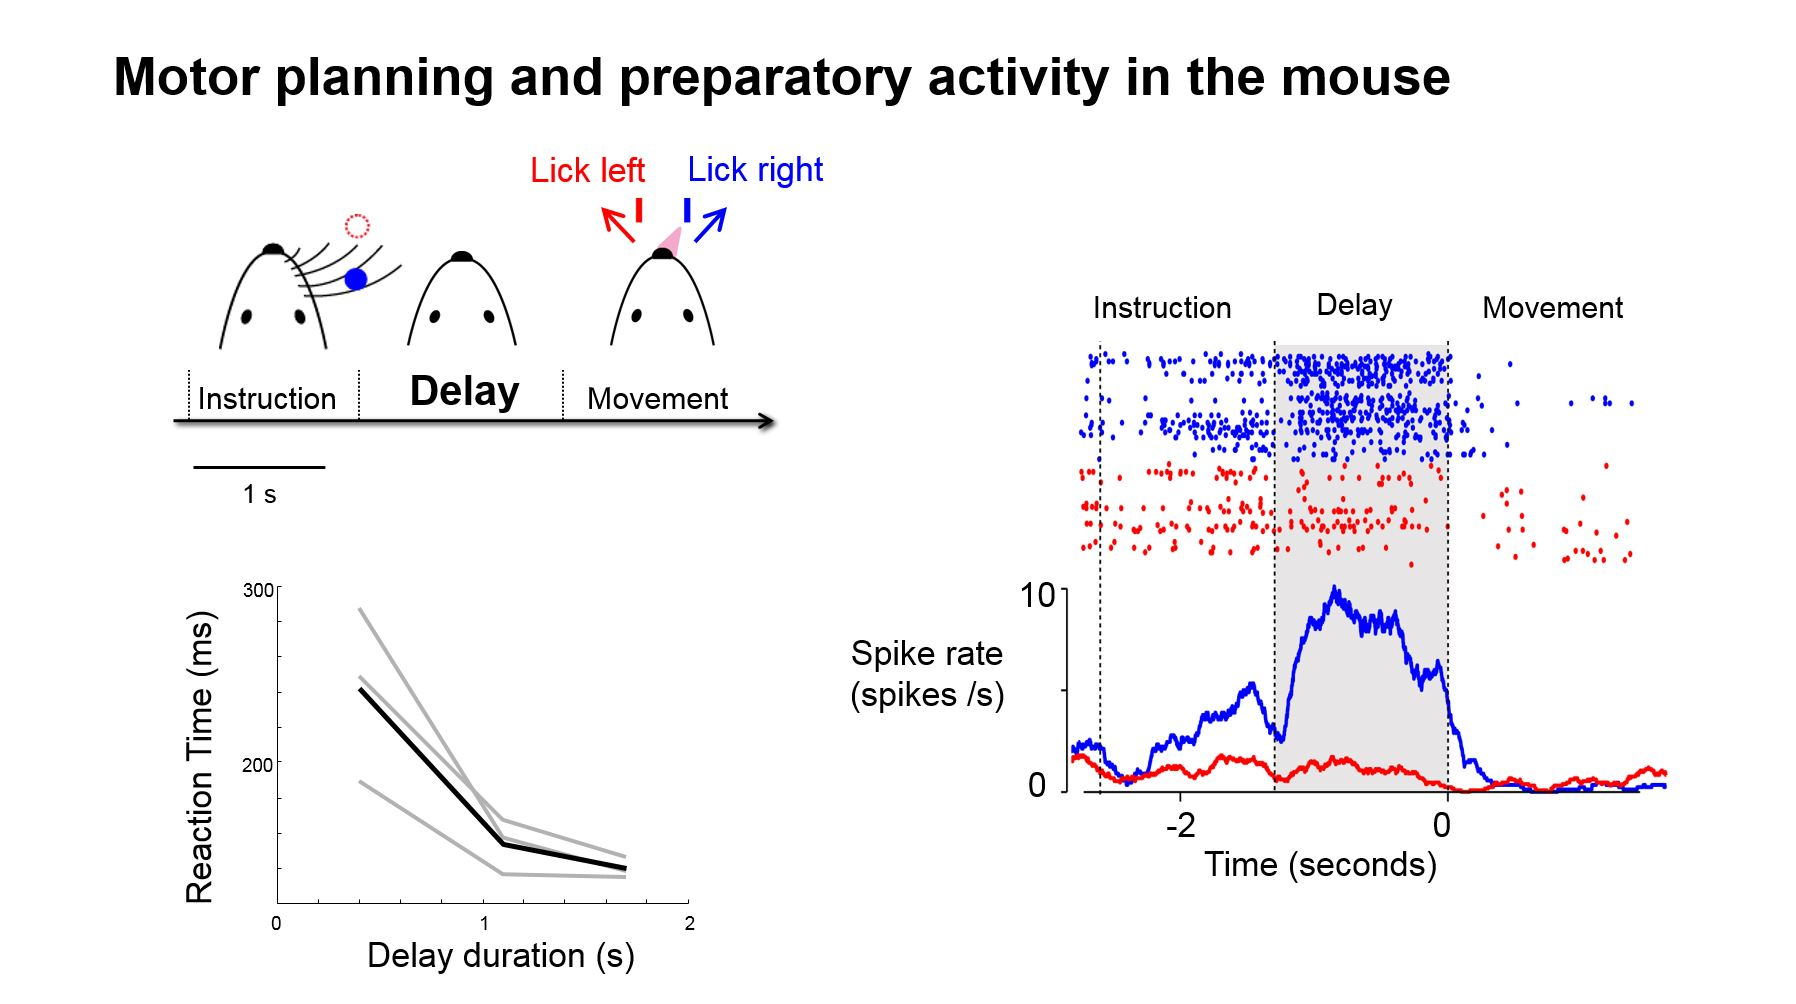 Motor planning and preparatory activity in the mouse